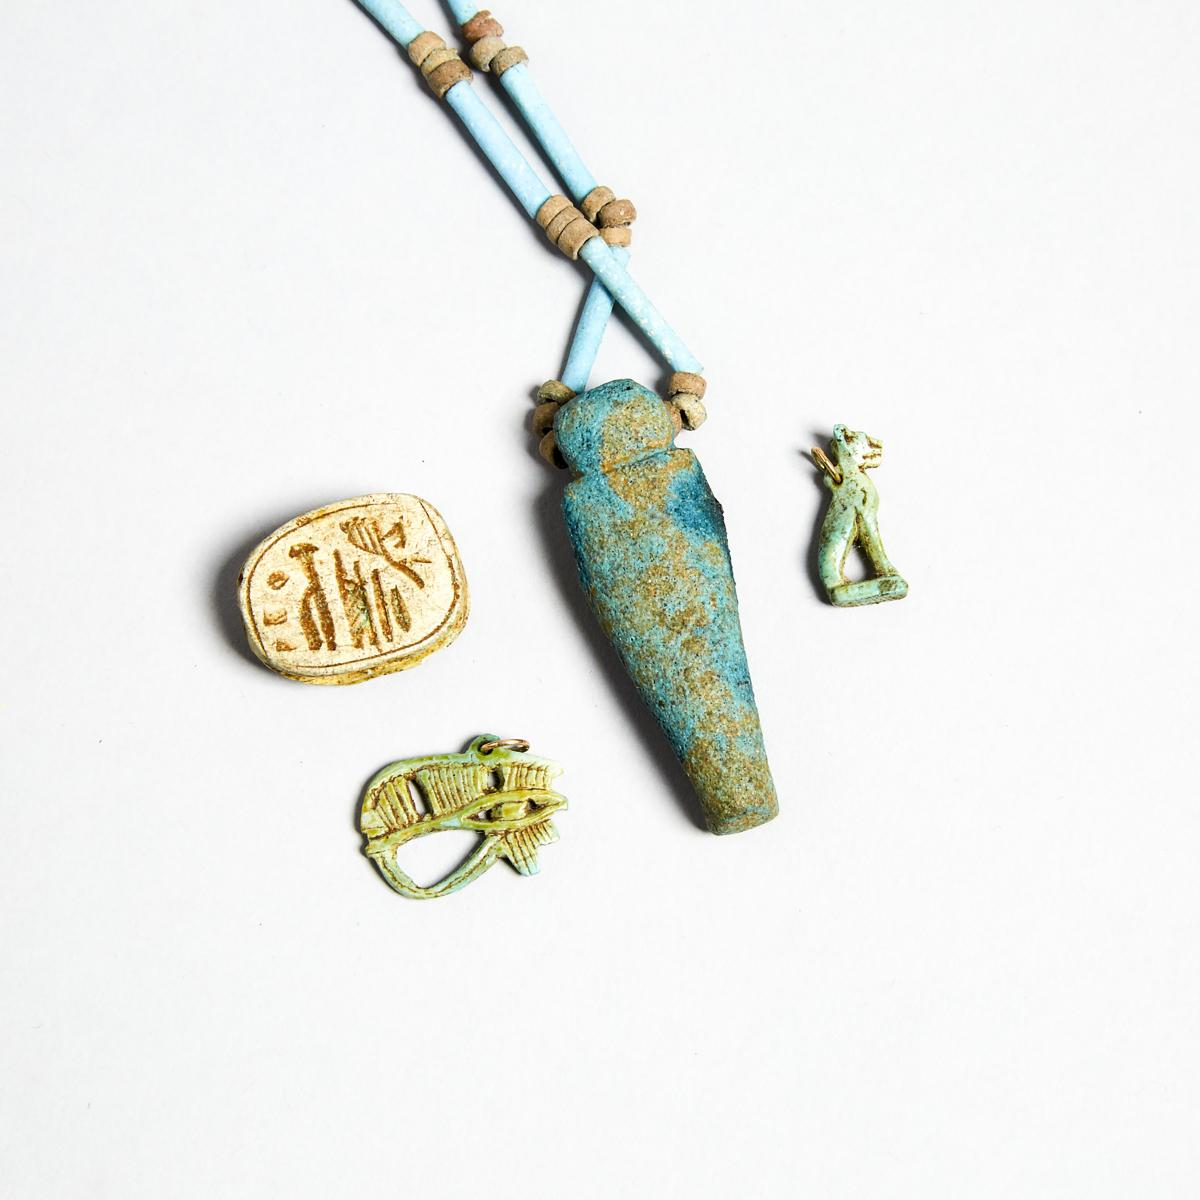 Group of Egyptian Turquoise Faience Amulets and Beads, New Kingdom to Late Period, 1550-332 B.C., sh - Image 3 of 3